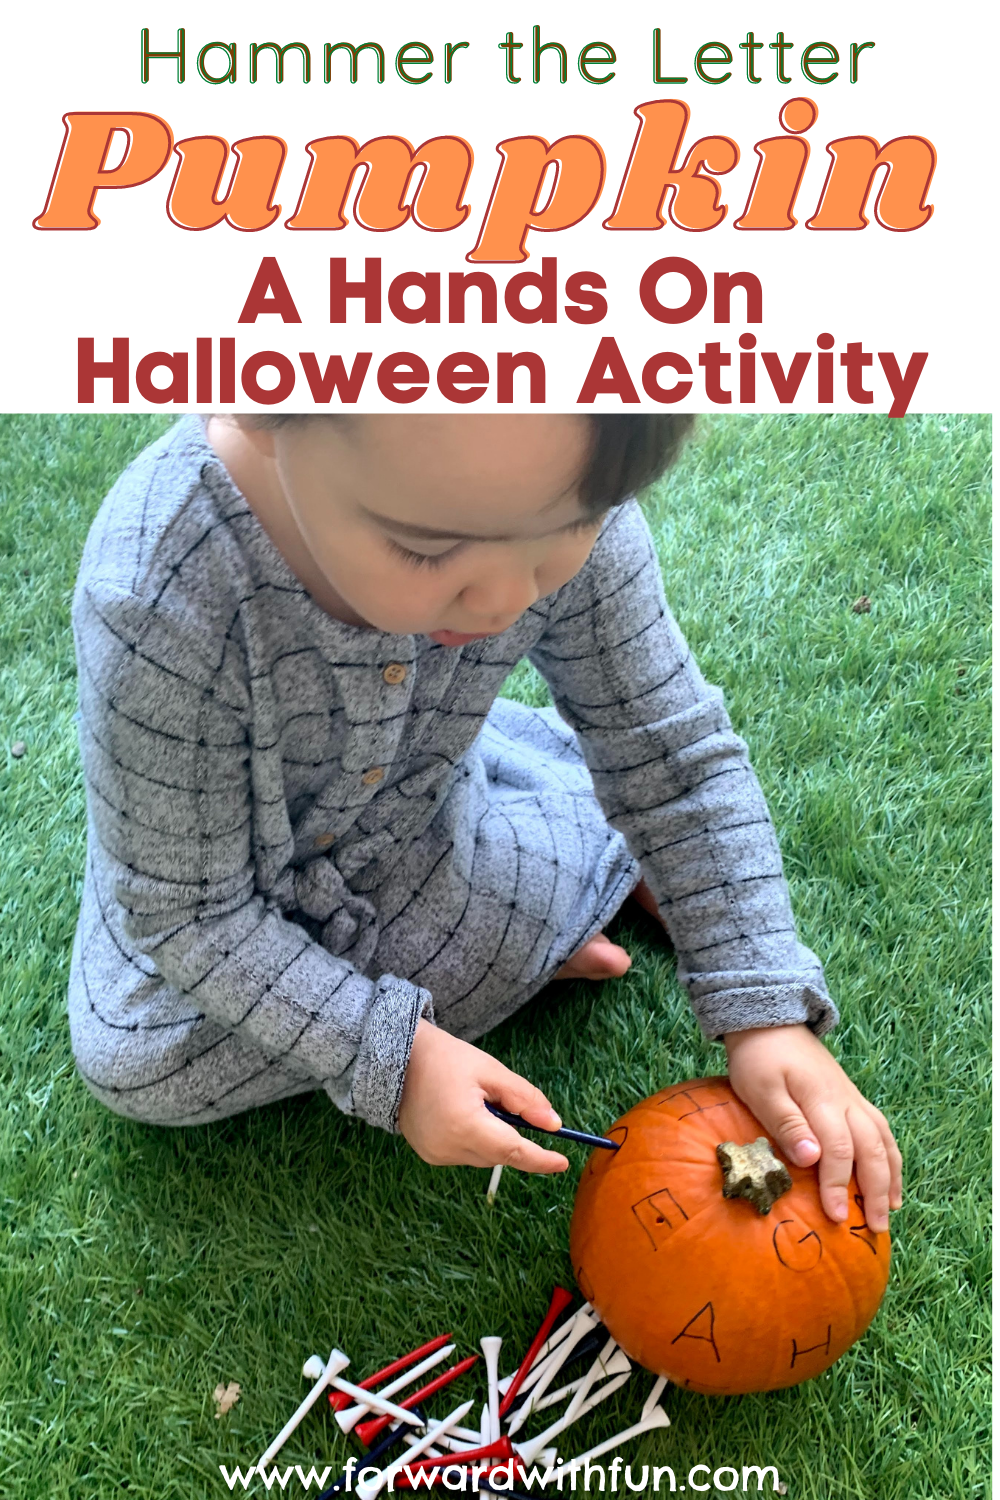 Small child hammering golf tees into a pumpkin